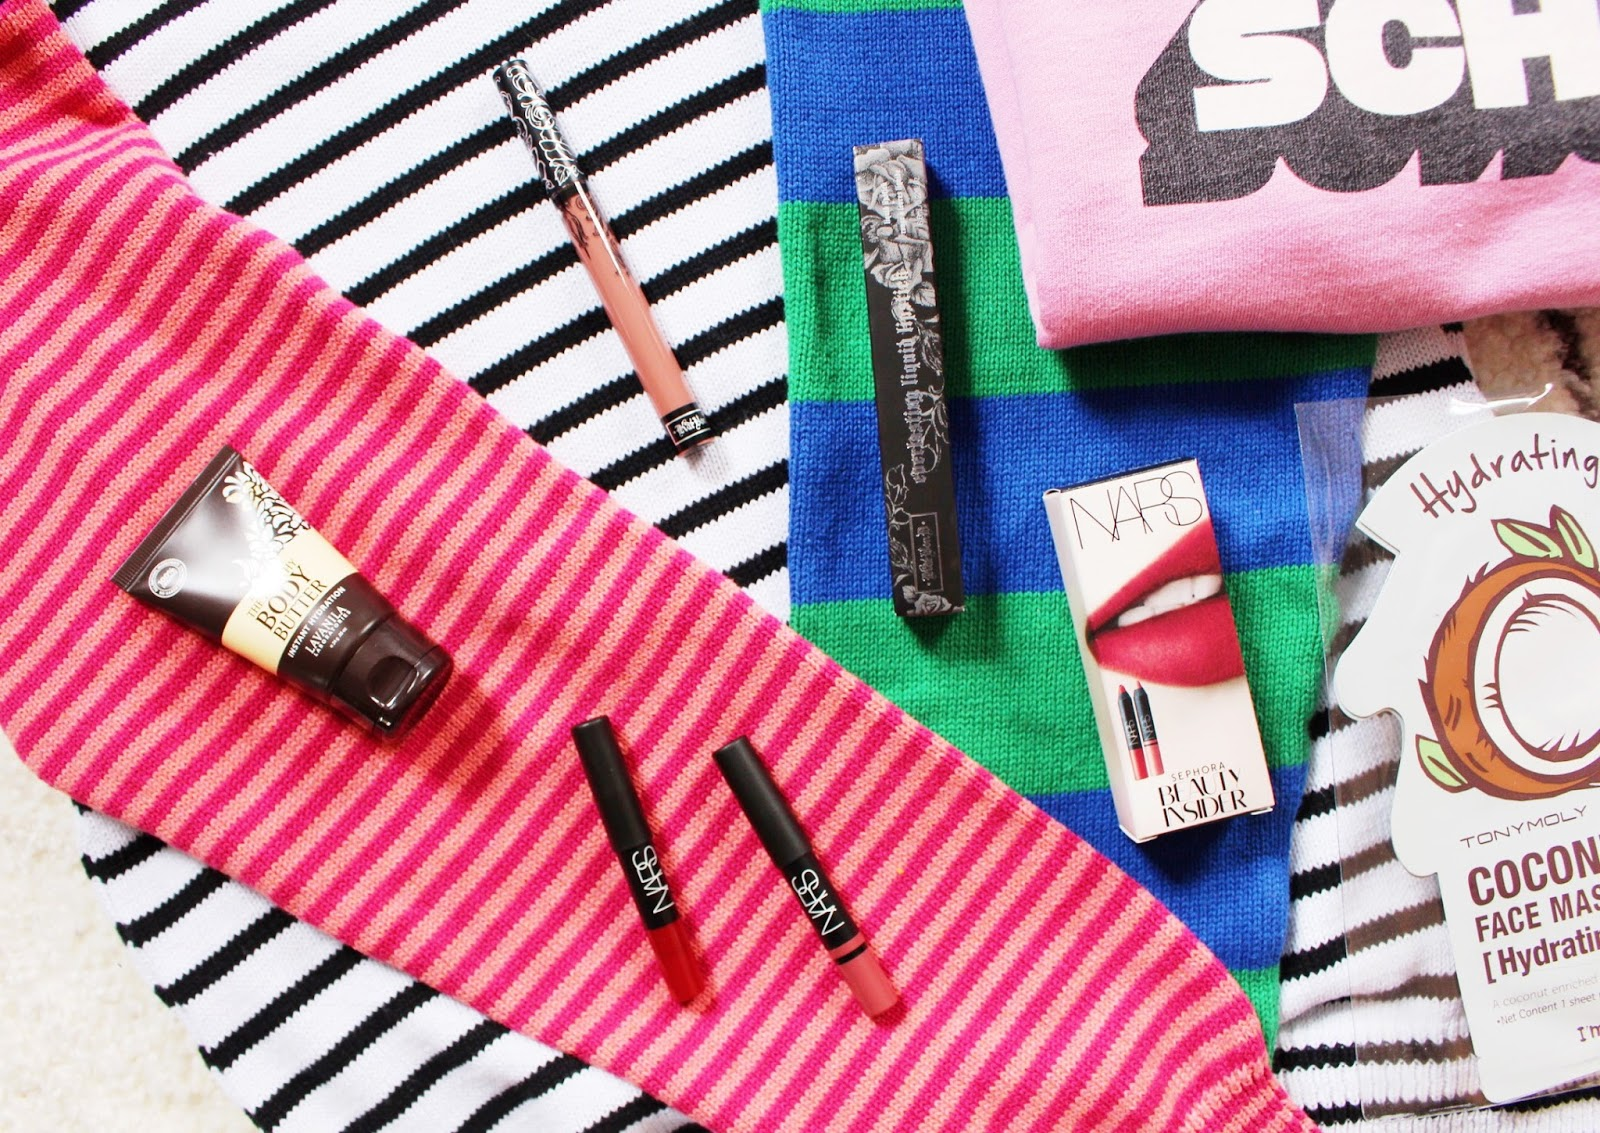 american apparel, marc by marc jacobs, sephora, kat von d, nars, mac